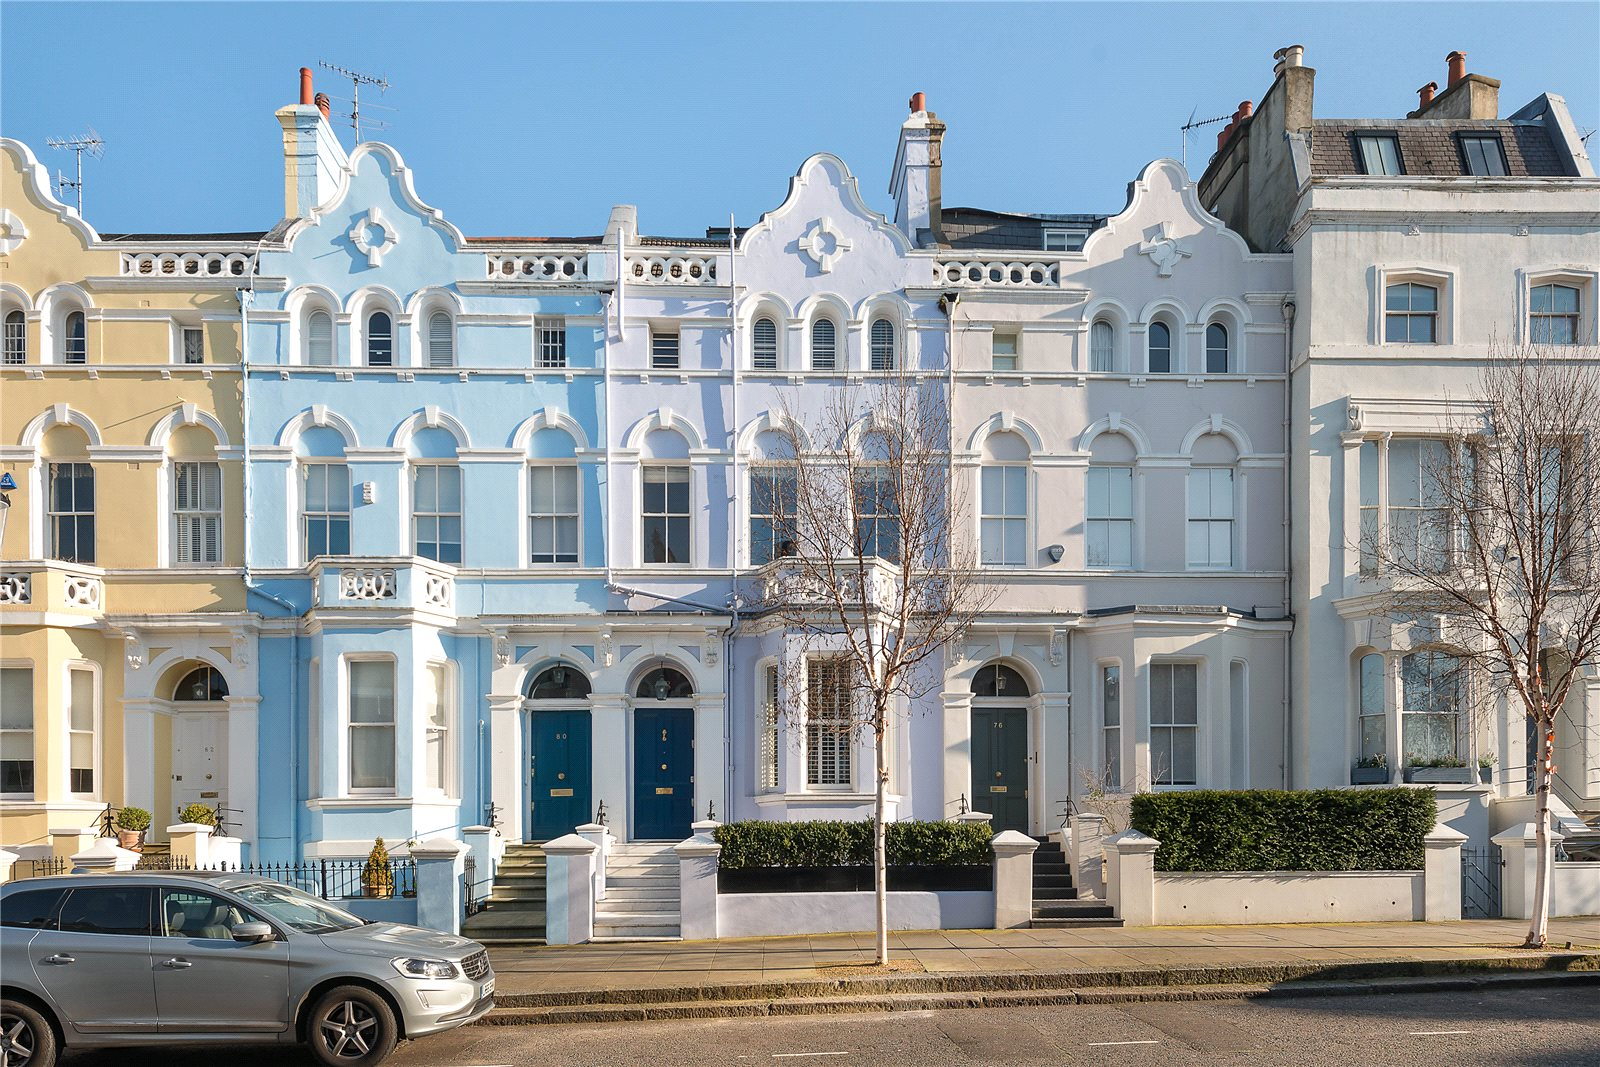 Lansdowne road notting hill w11 a luxury home for sale for House notting hill